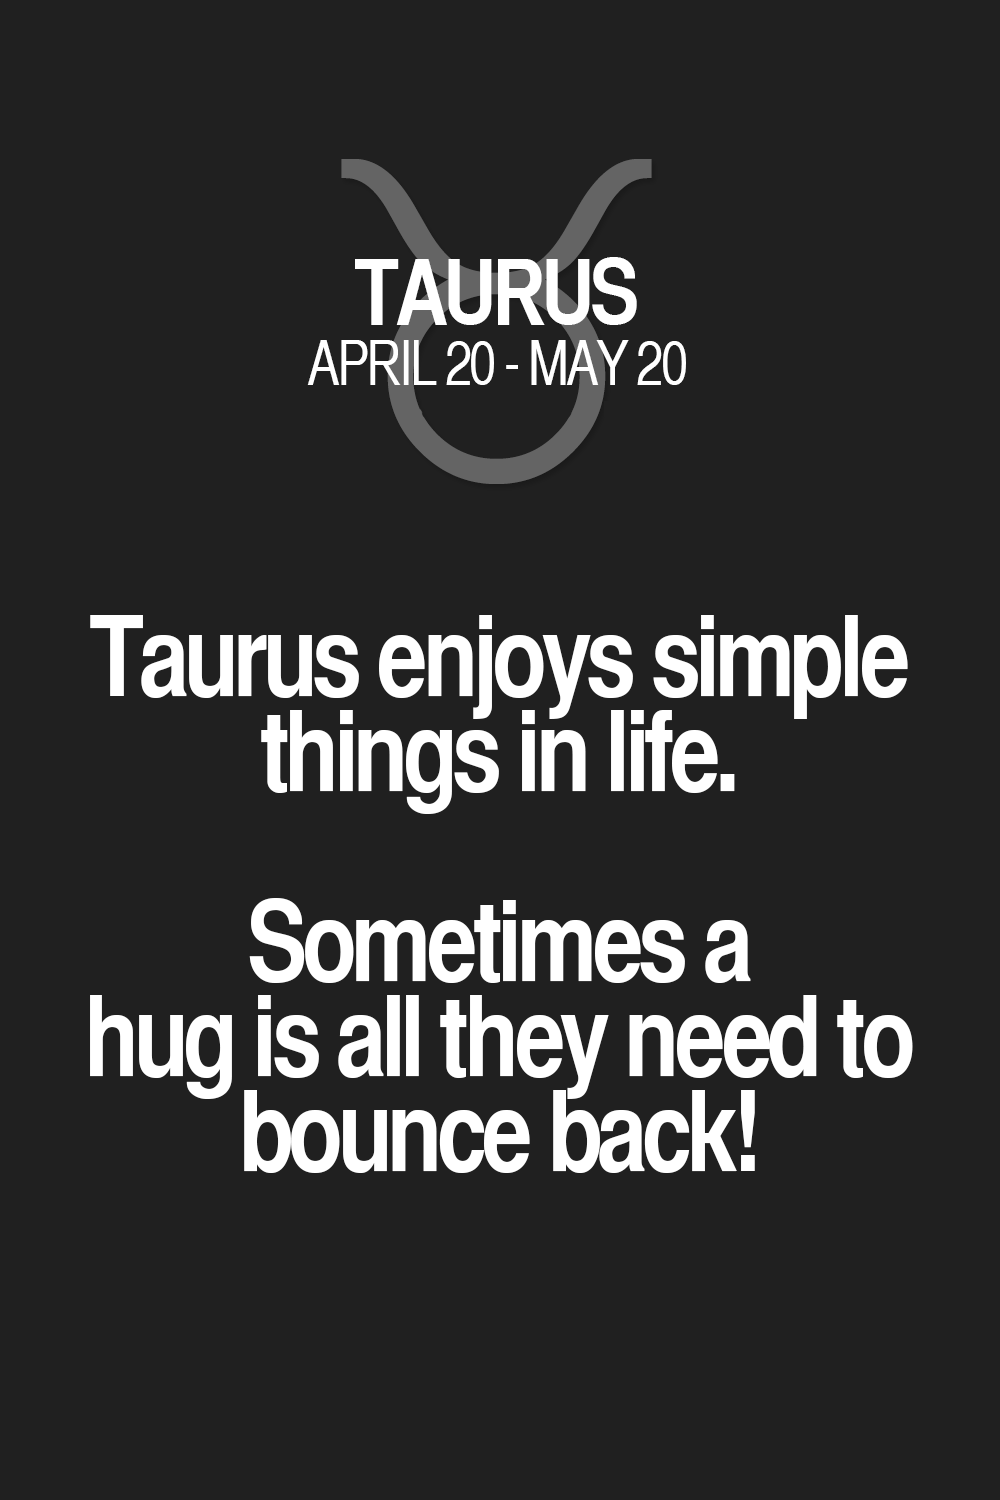 Bounce Back Quotes Taurus Enjoys Simple Things In Lifesometimes A Hug Is All They